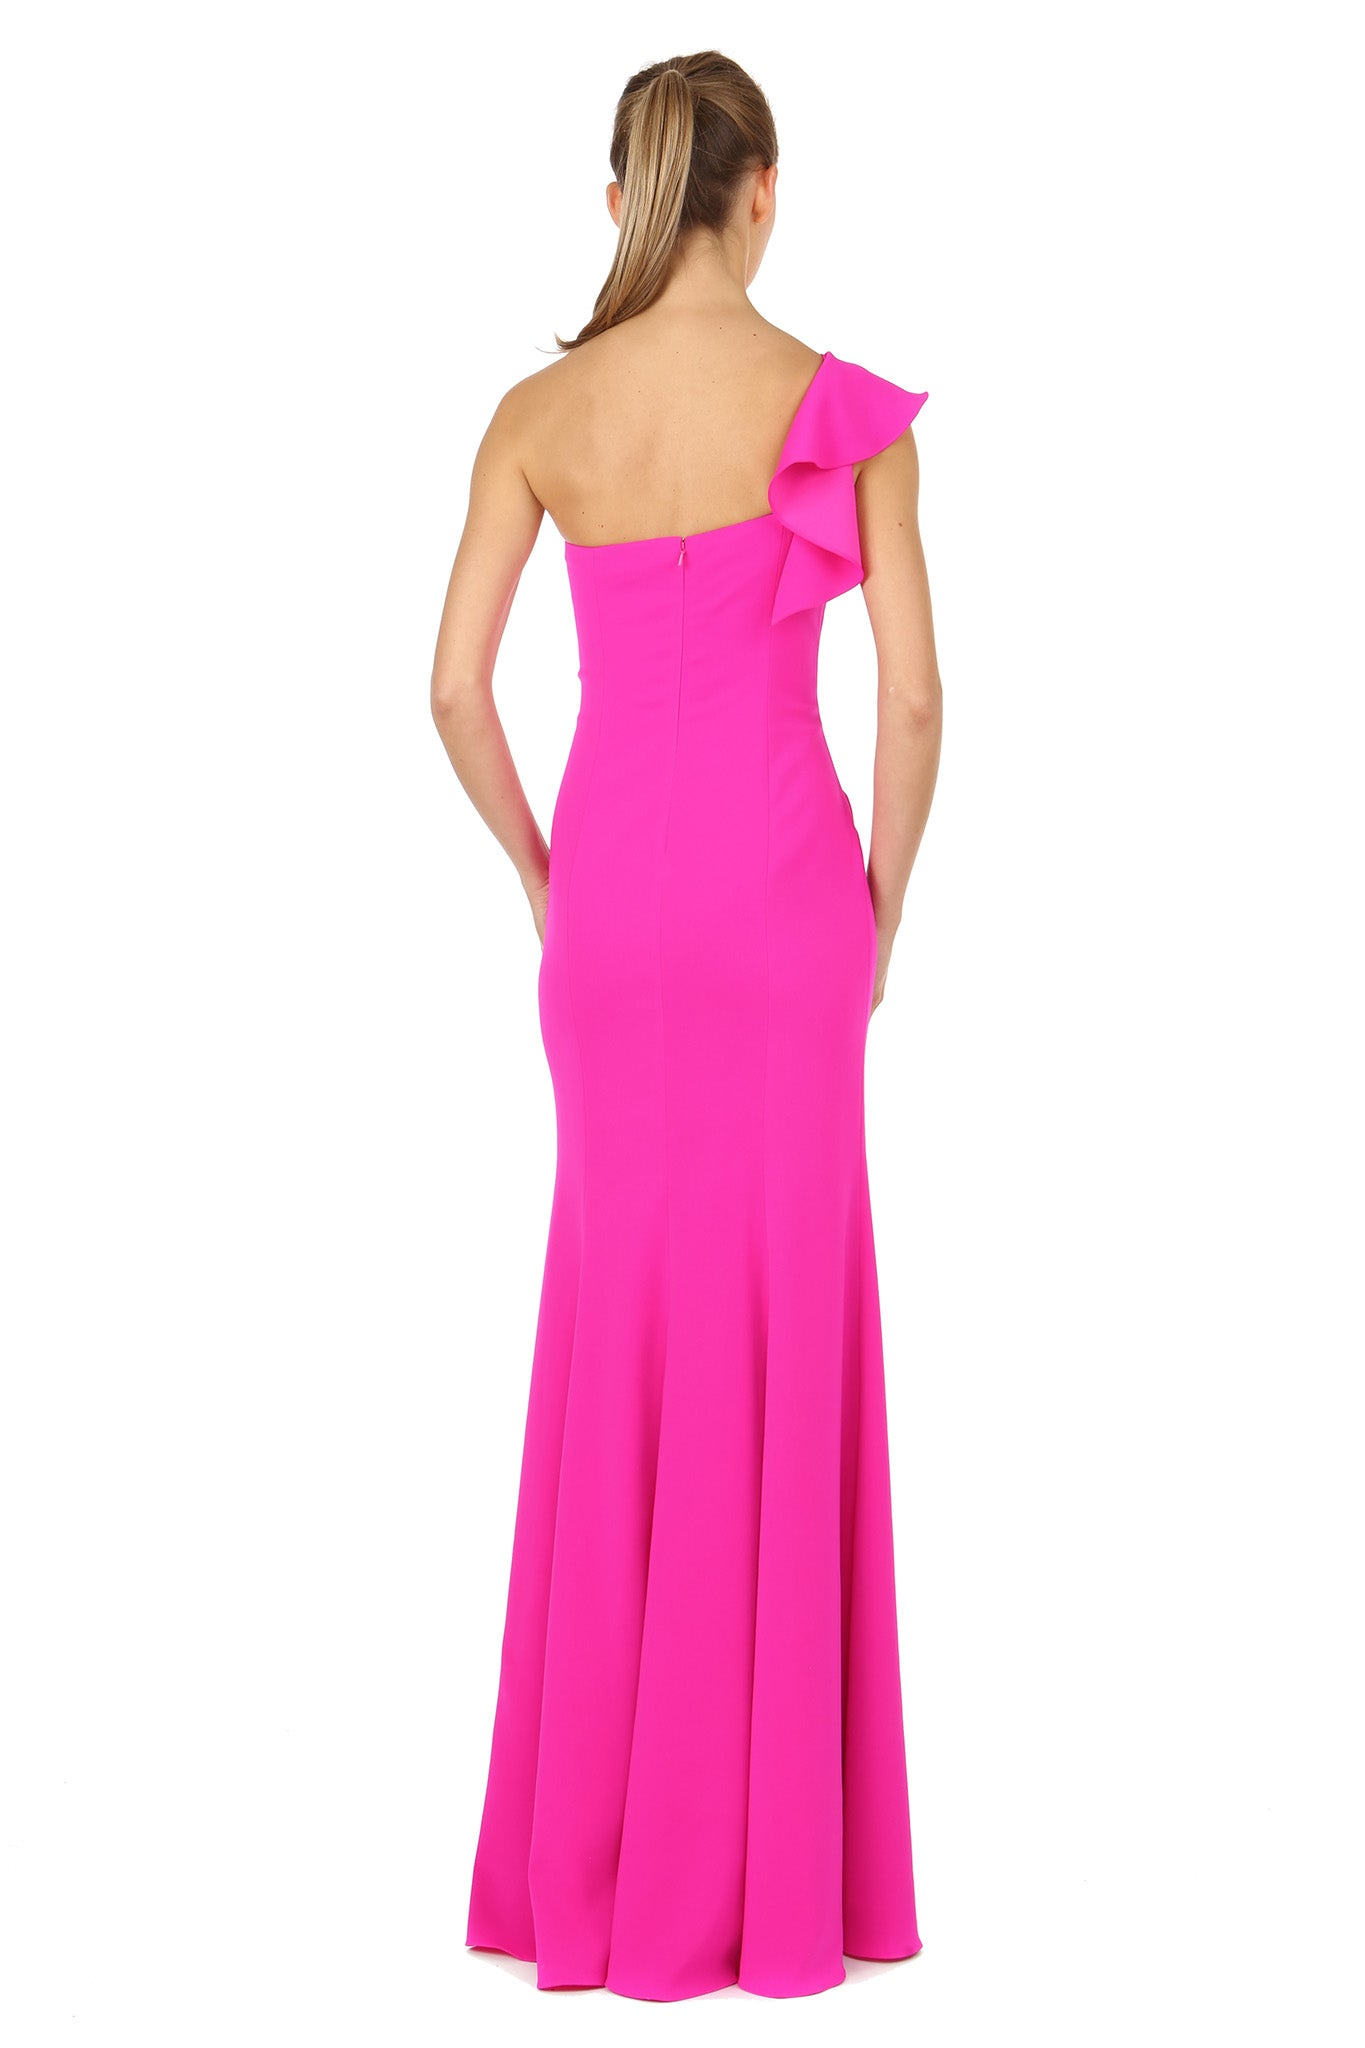 Jay Godfrey One-Shoulder Fuchsia Gown - Back View